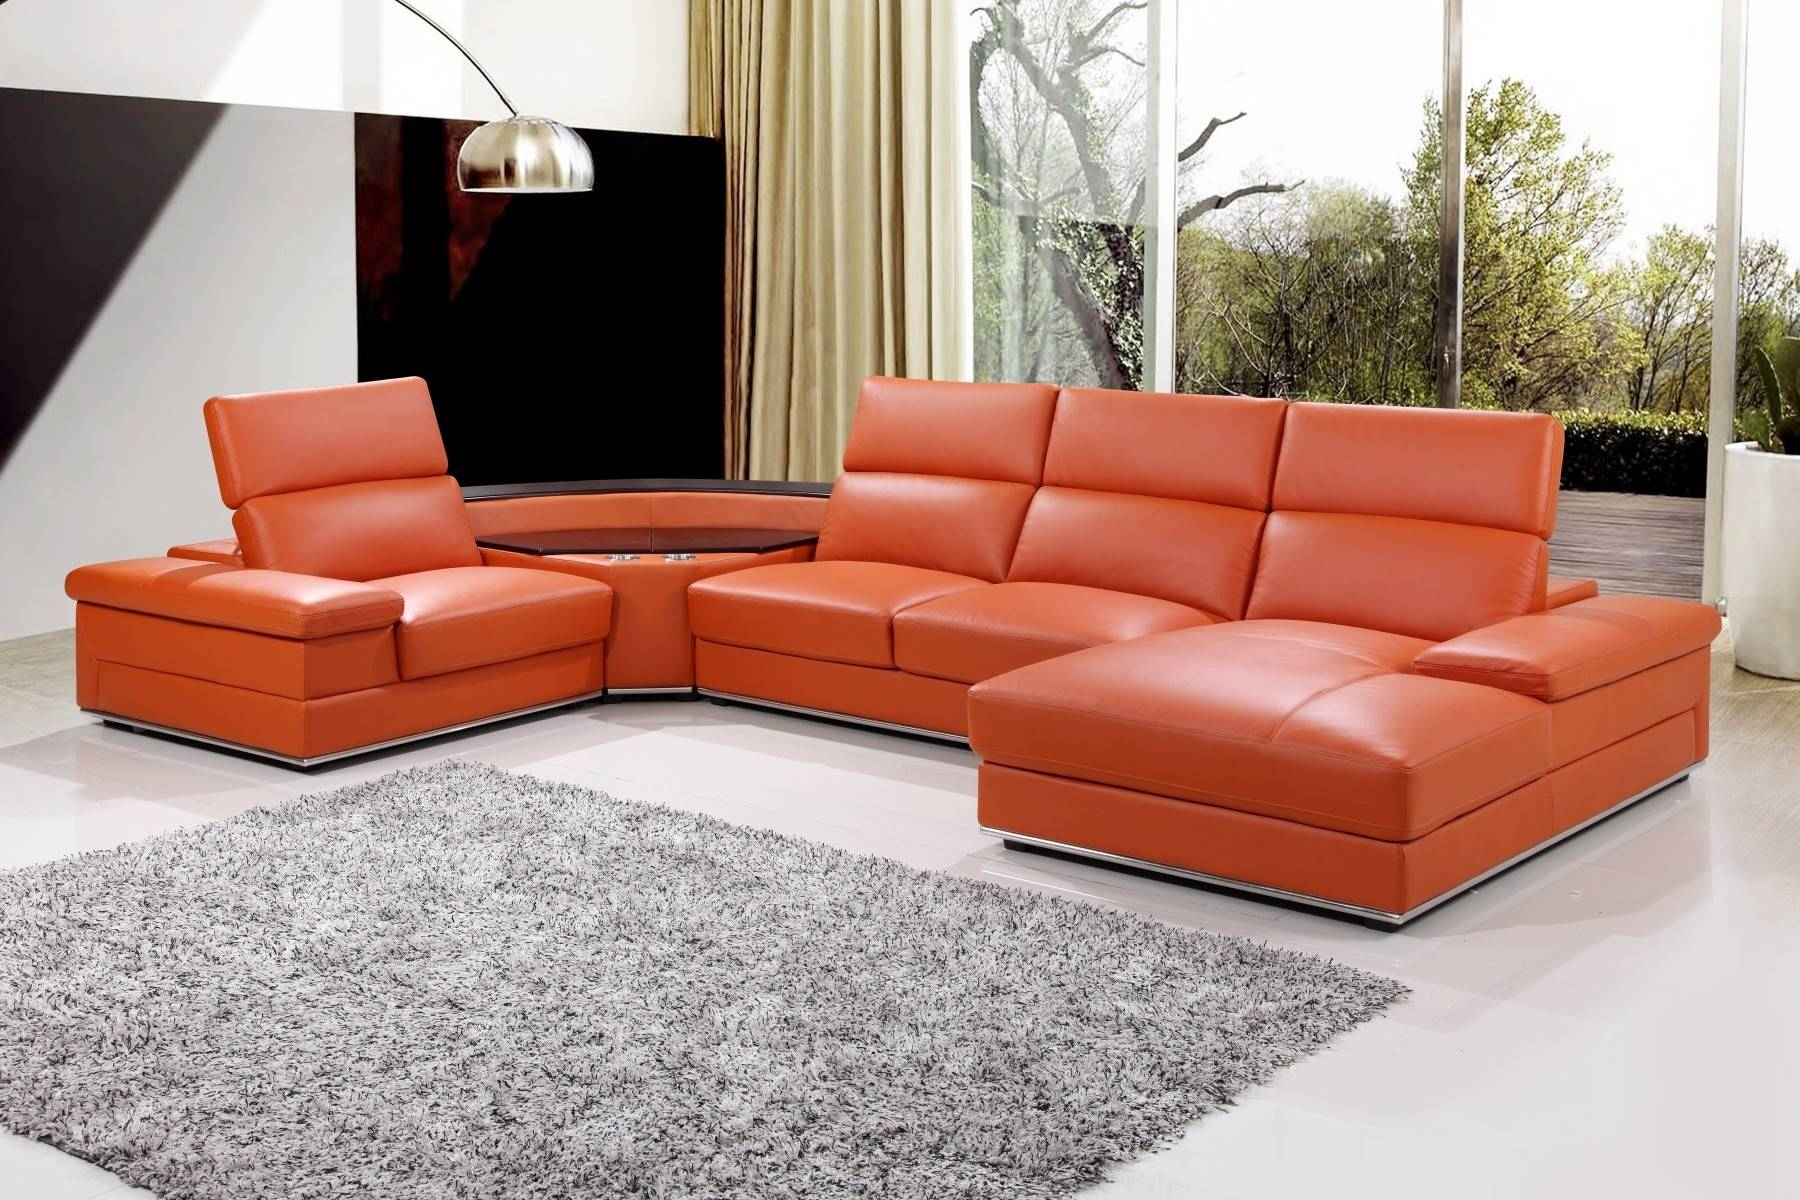 12 Collection Of Eco Friendly Sectional Sofa intended for Eco Friendly Sectional Sofa (Image 1 of 30)